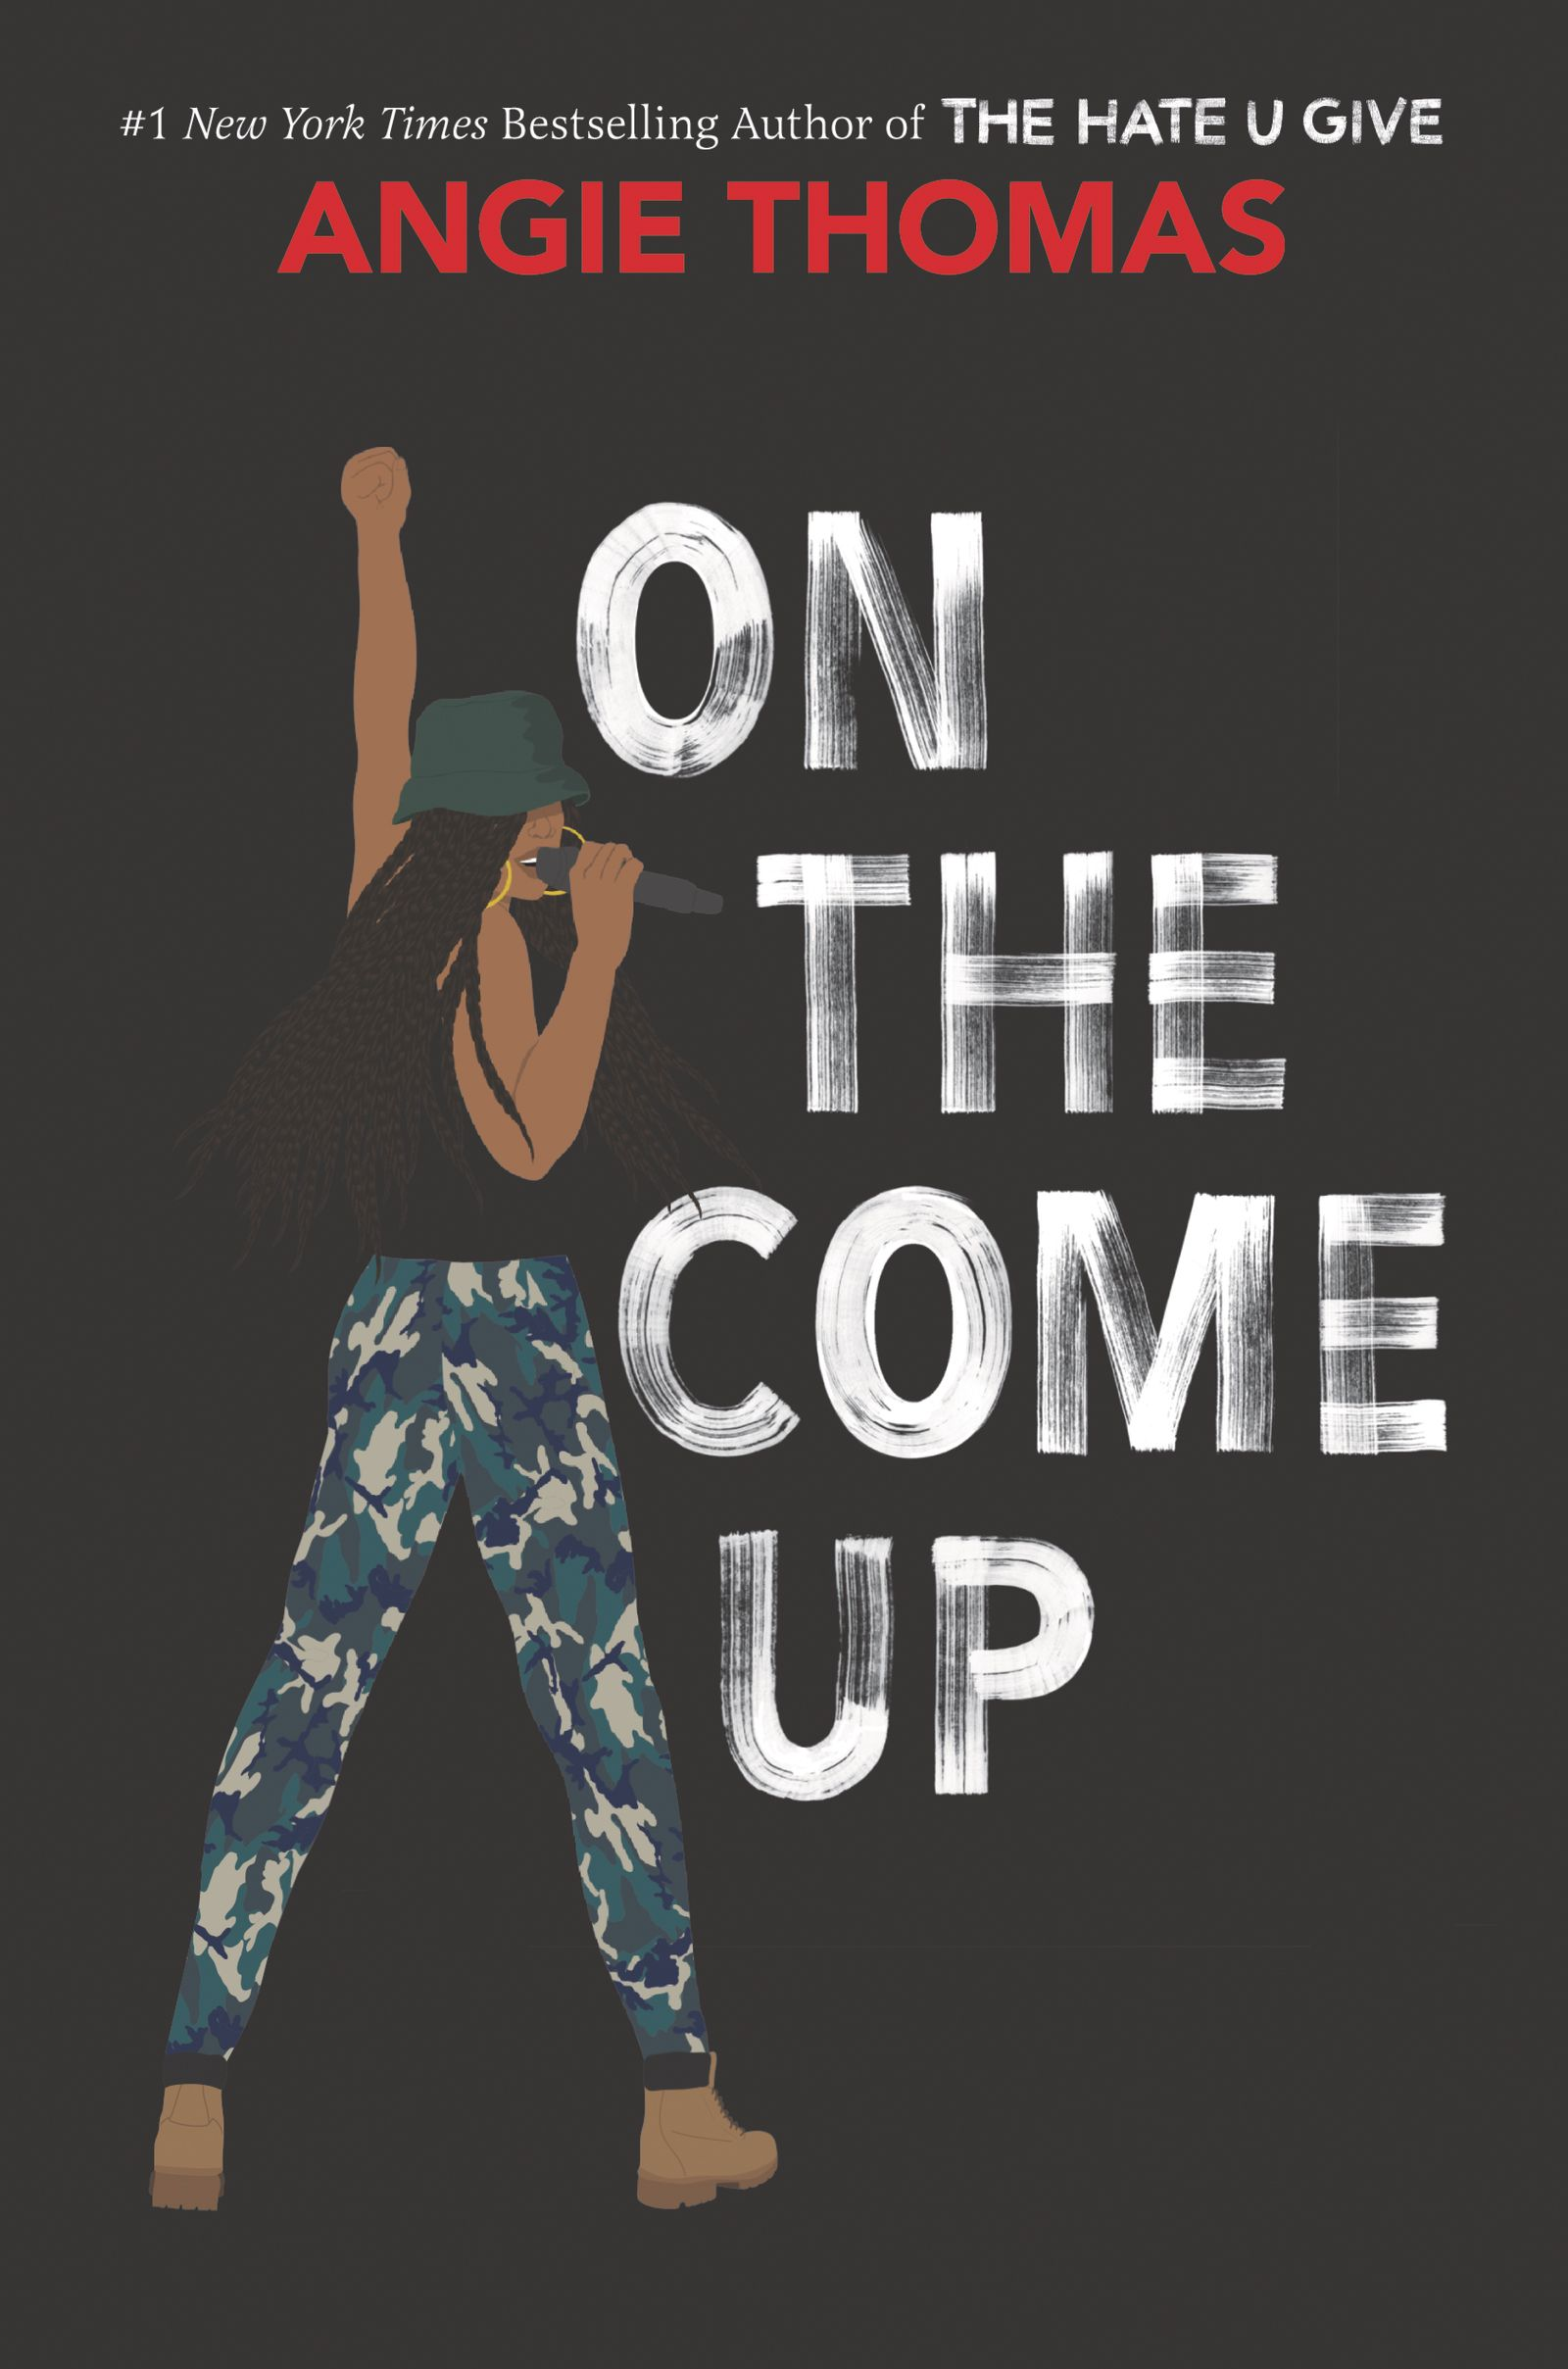 on the up come by angie thomas - Sixteen-year-old Bri wants to be one of the greatest rappers of all time. Or at least make it out of her neighborhood one day. As the daughter of an underground rap legend who died before he hit big, Bri's got big shoes to fill. But now that her mom has unexpectedly lost her job, food banks and shutoff notices are as much a part of Bri's life as beats and rhymes. With bills piling up and homelessness staring her family down, Bri no longer just wants to make it—she has to make it.On the Come Up is Angie Thomas's homage to hip-hop, the art that sparked her passion for storytelling and continues to inspire her to this day. It is the story of fighting for your dreams, even as the odds are stacked against you; of the struggle to become who you are and not who everyone expects you to be; and of the desperate realities of poor and working-class black families.